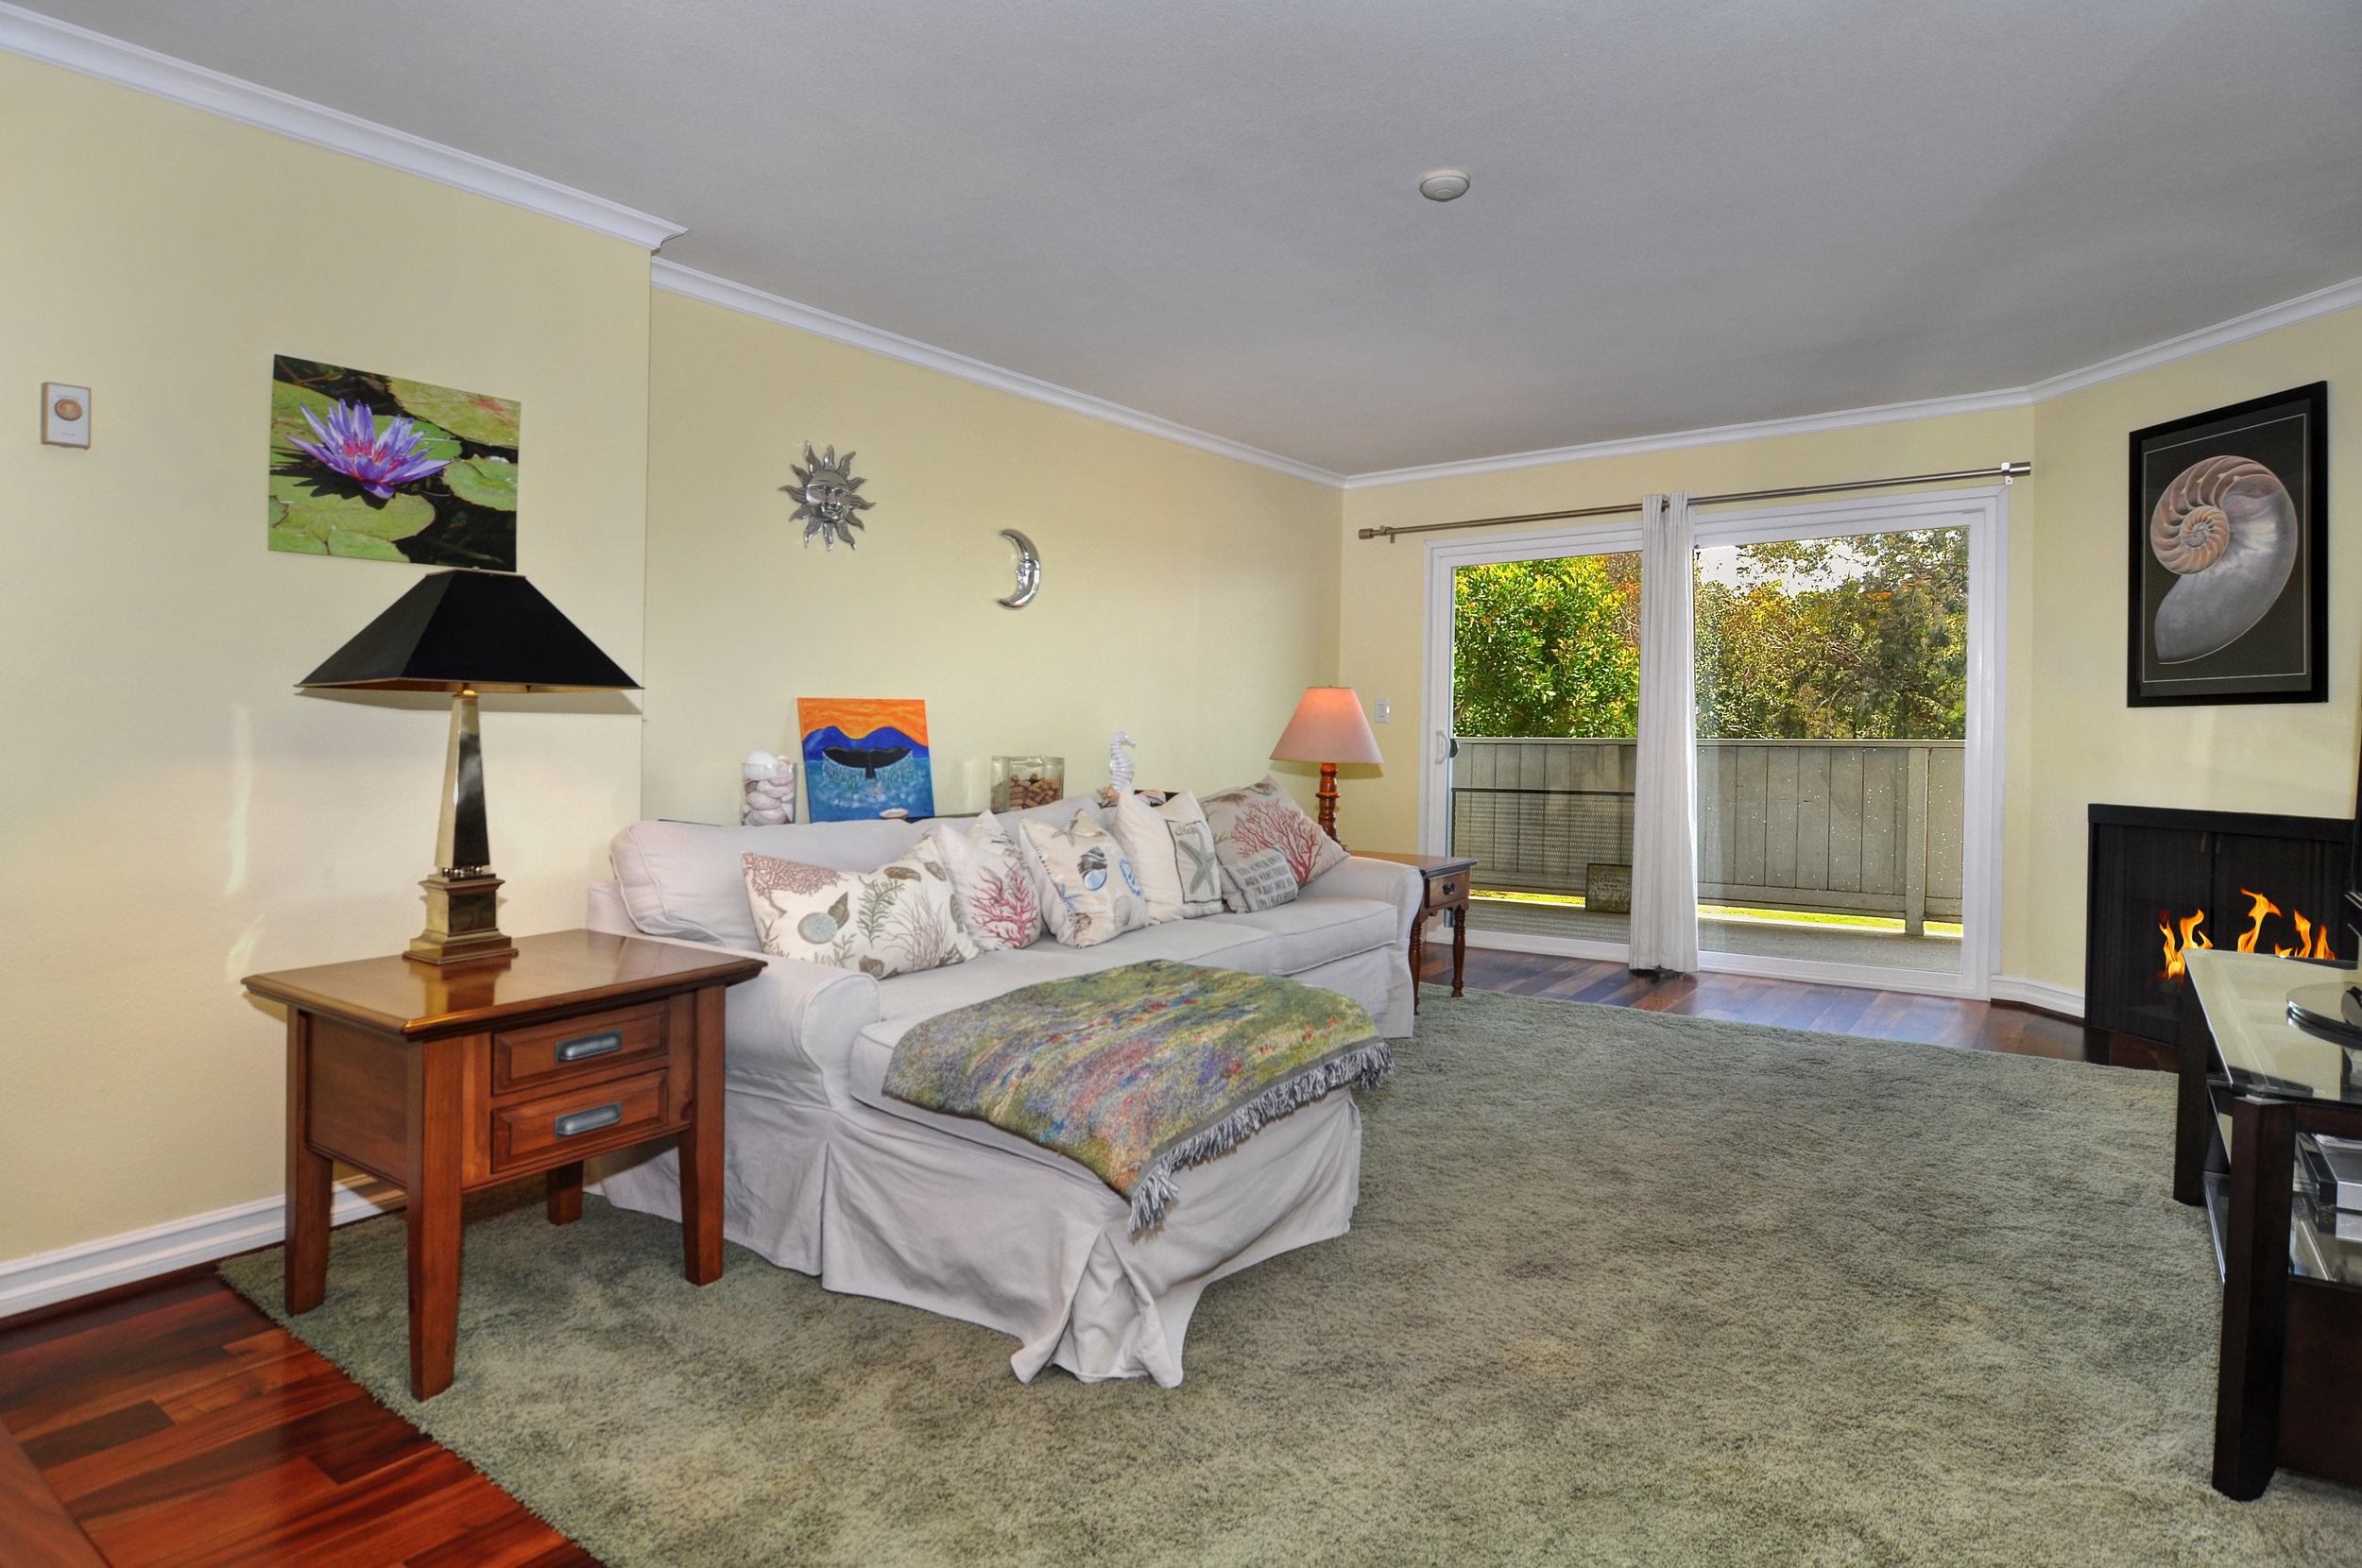 5 Min. to the Beach - SOLD by MARIA X for $565,0001321 Beryl Street #202, Redondo Beach2 Bedrooms, 2 Baths, 1199 sq. ft. (A)